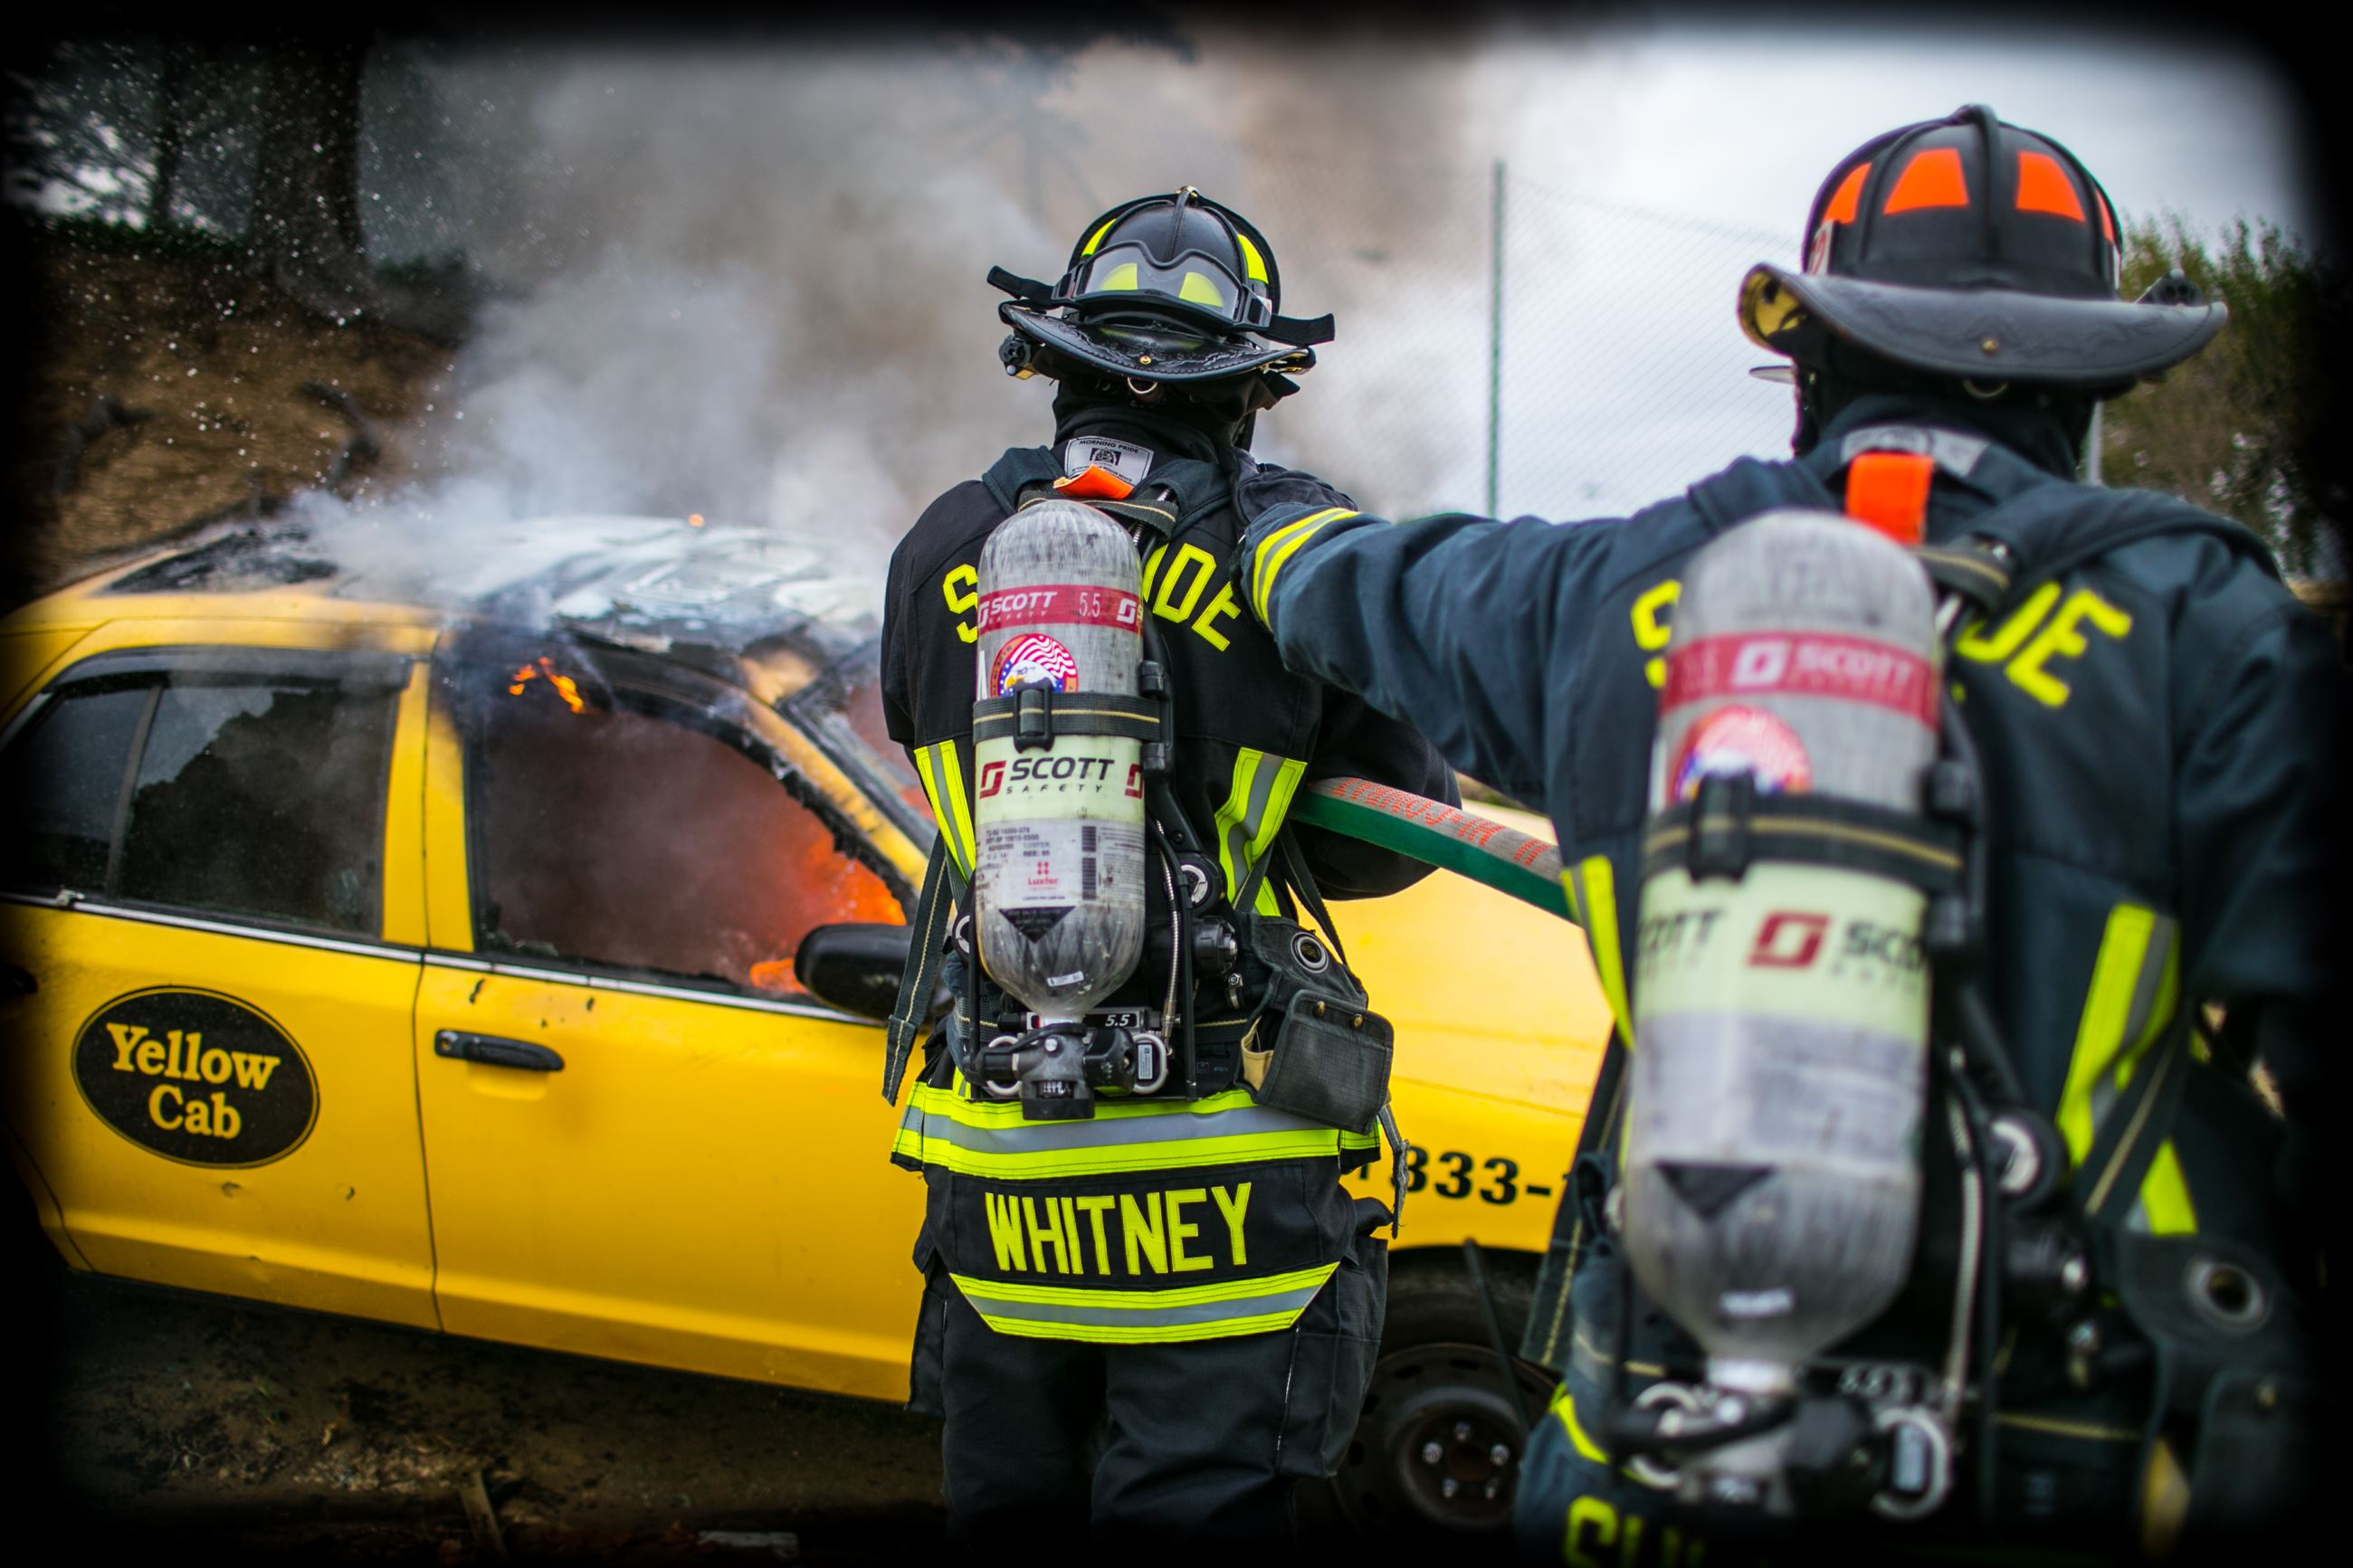 Two FD personnel in turnout gear extinguishing a burning yellow cab